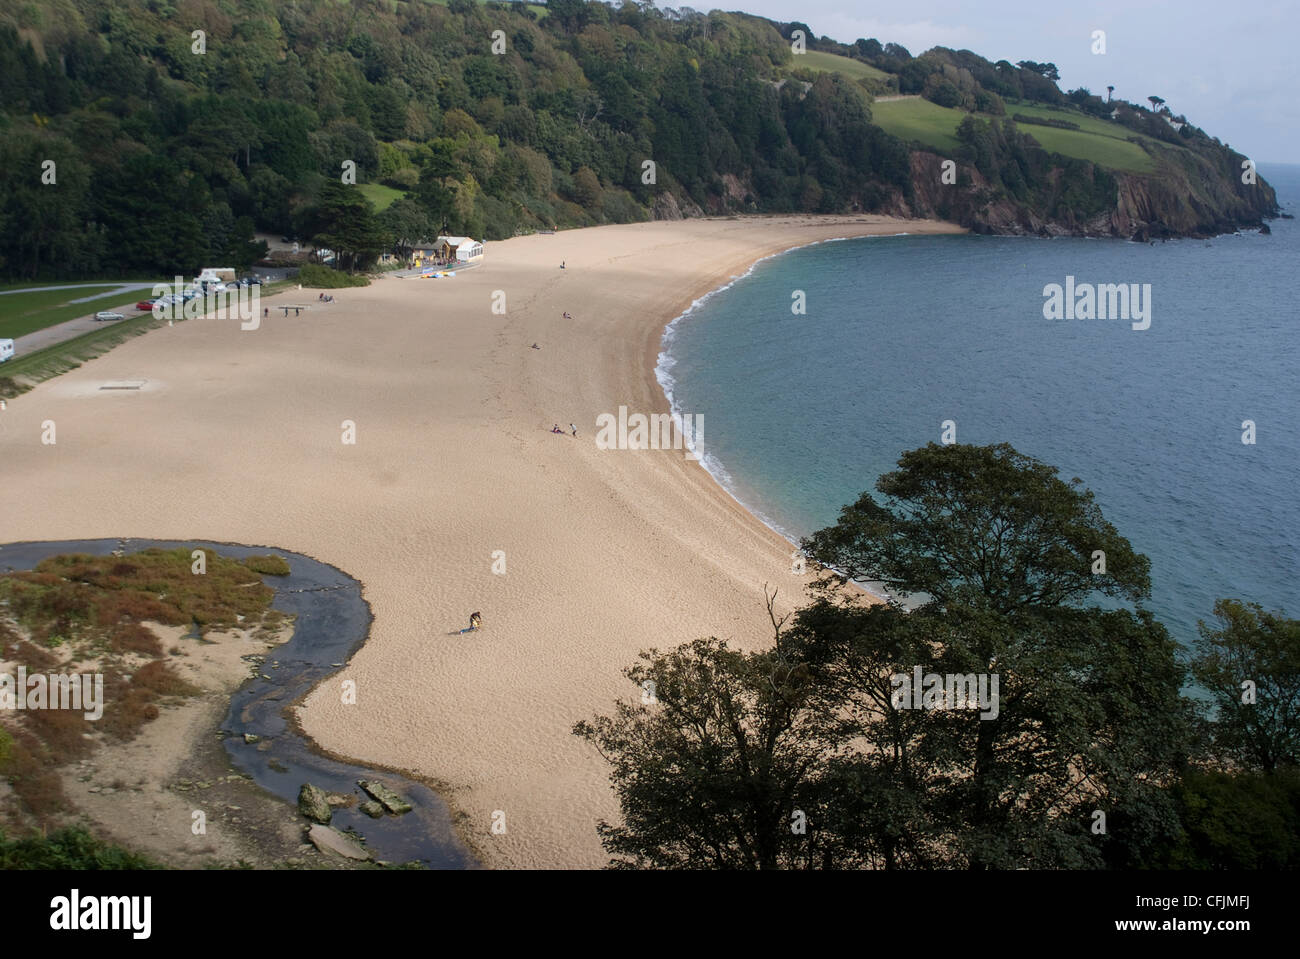 The beach at Blackpool Sands, Devon, England, United Kingdom, Europe - Stock Image